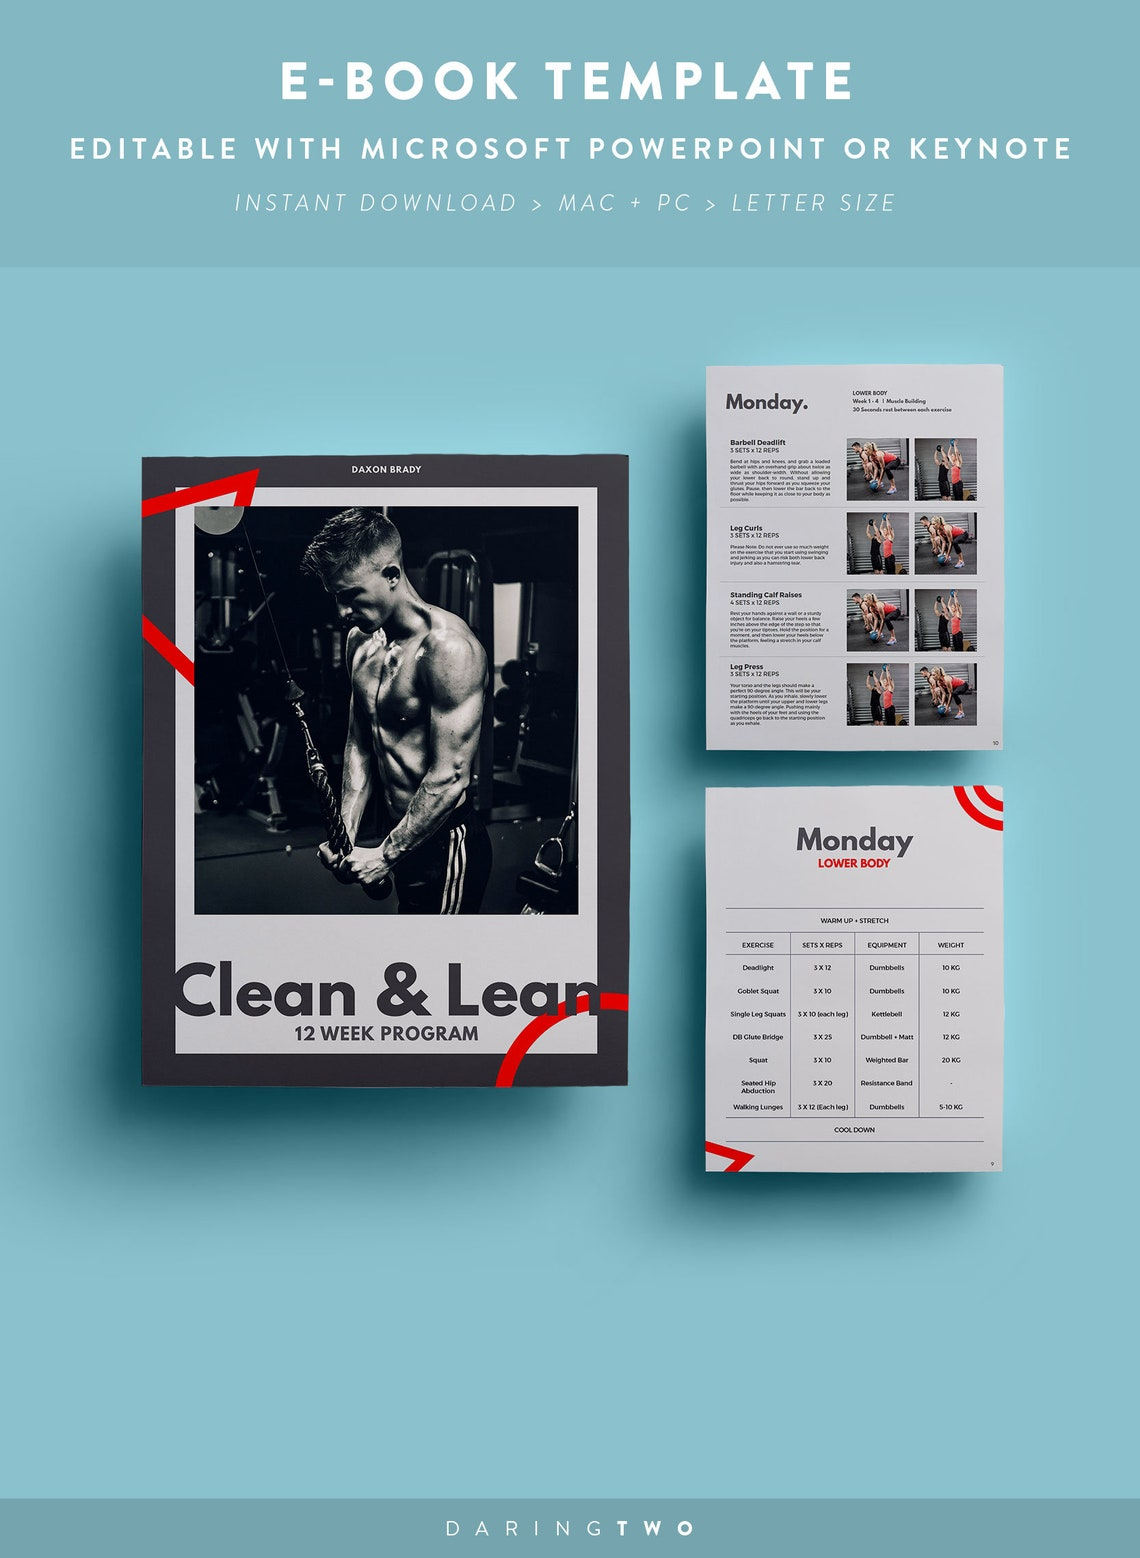 F3 Ebook Template // 16 Pages  Fully Editable  Customizable image 0